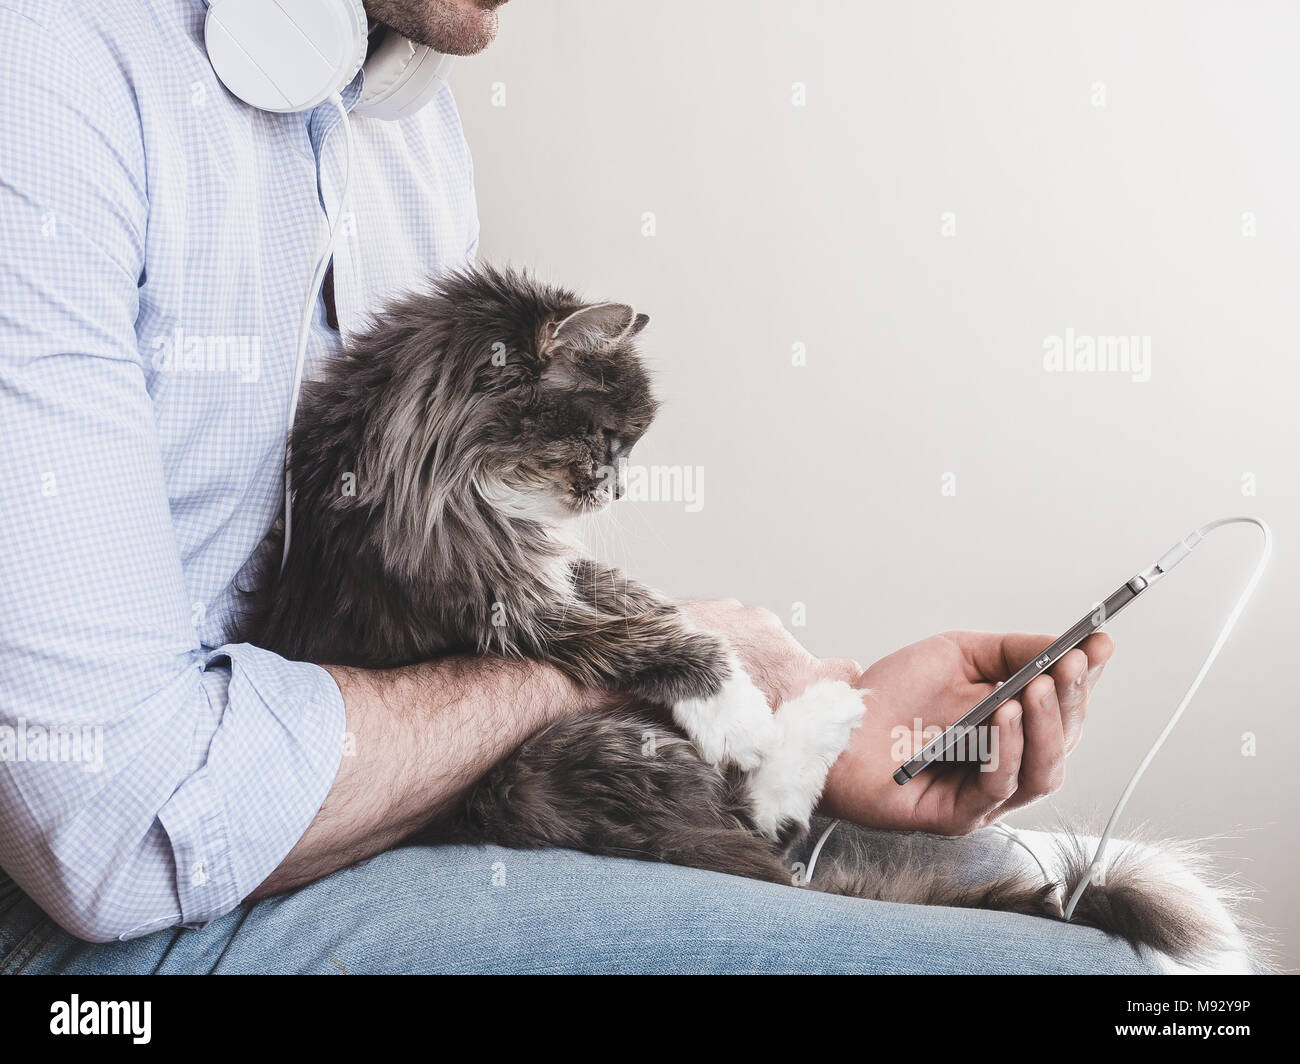 Handsome man in headphones and with a mobile phone, gently holding a cute kitten on his hands. People, pets, love and care - Stock Image